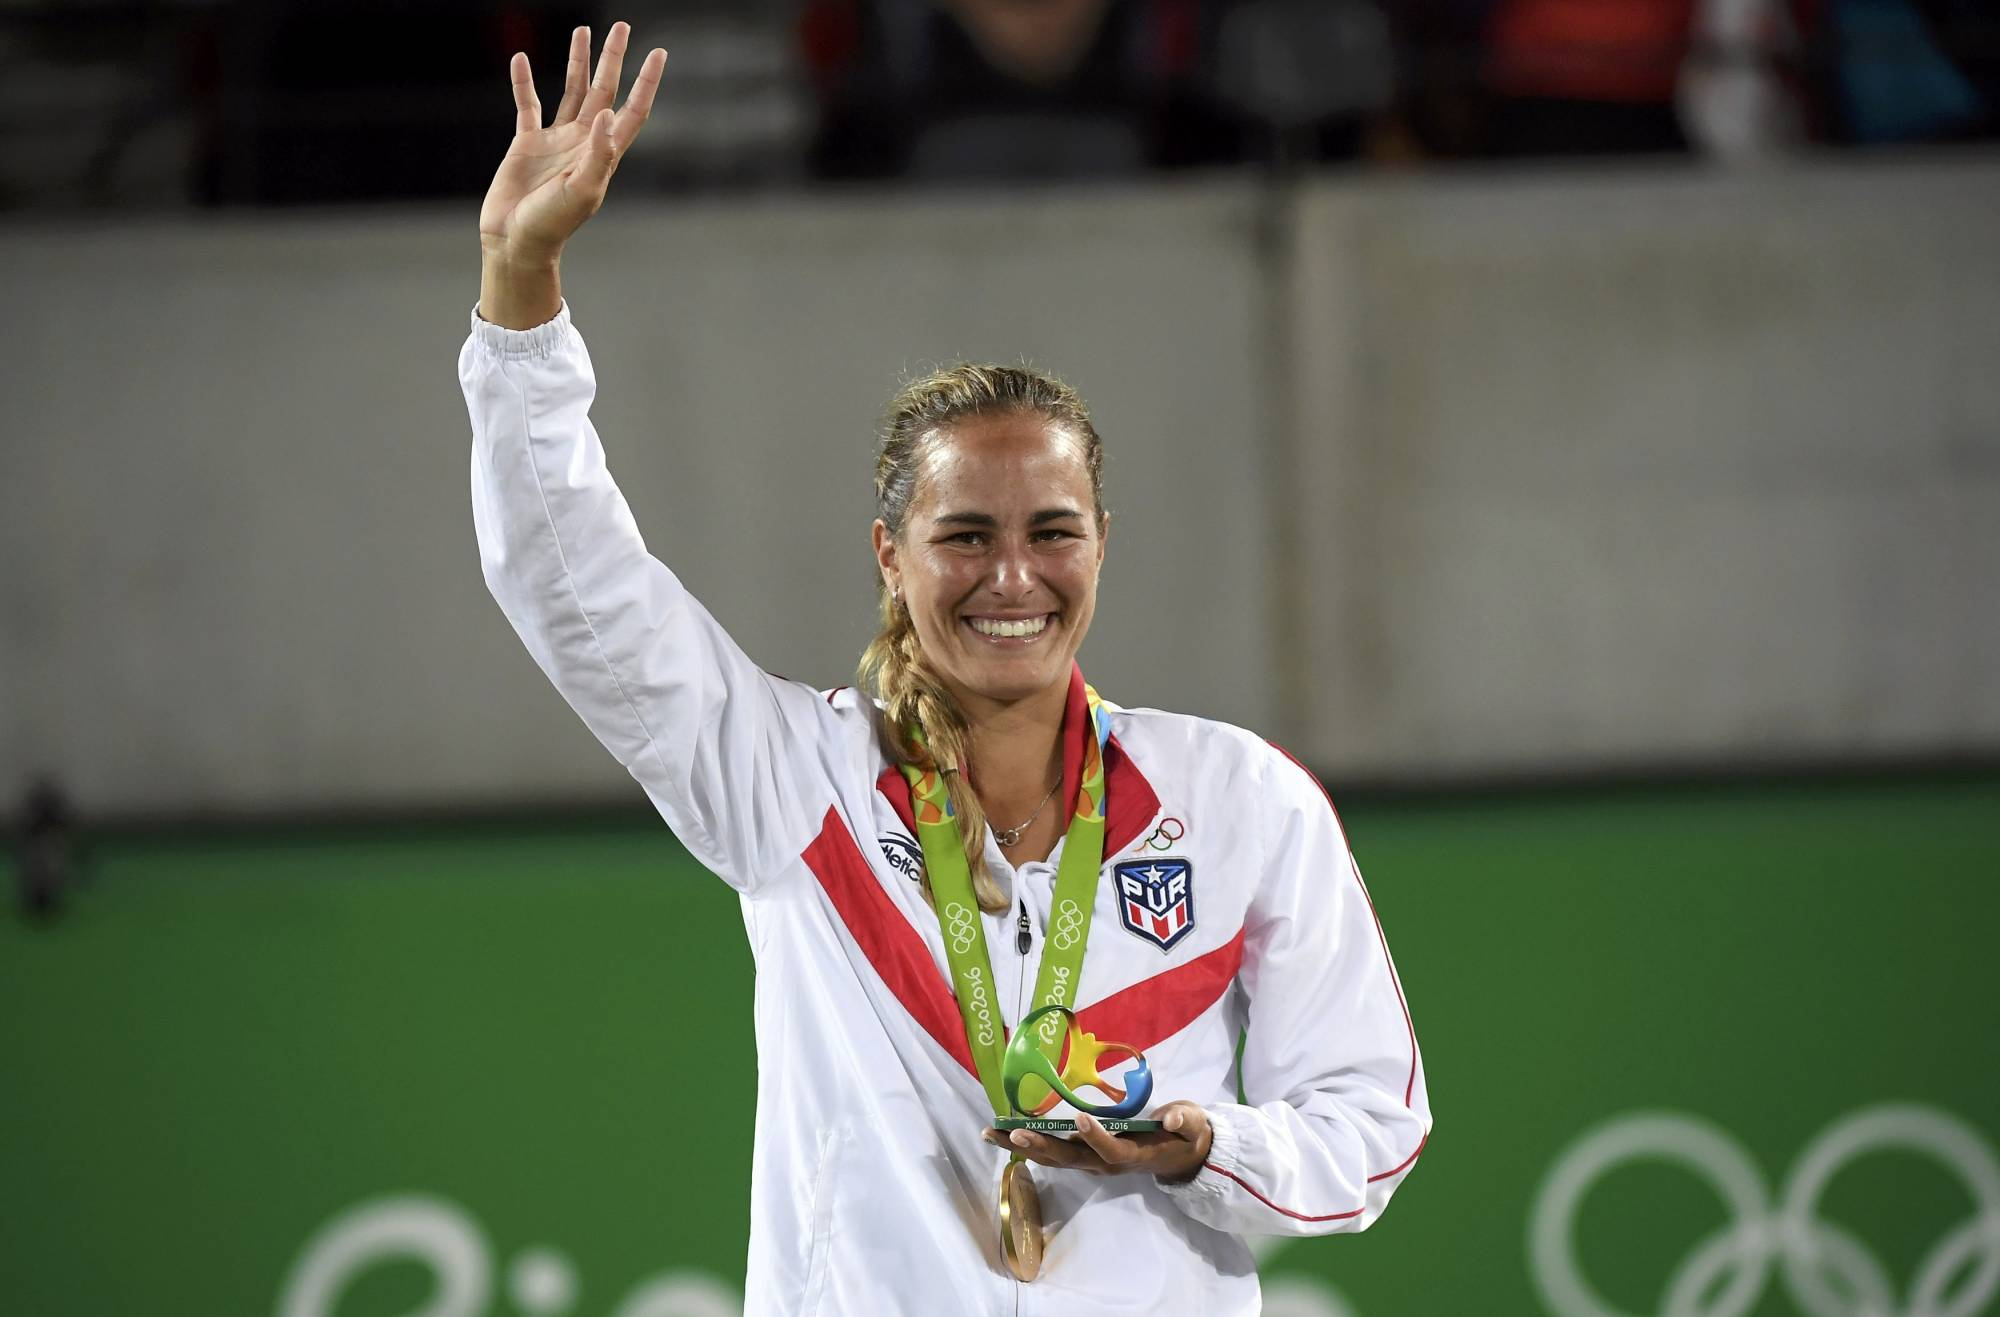 Monica Puig waves during the victory ceremony after winning the women's singles gold medal at the 2016 Rio Games.  | REUTERS